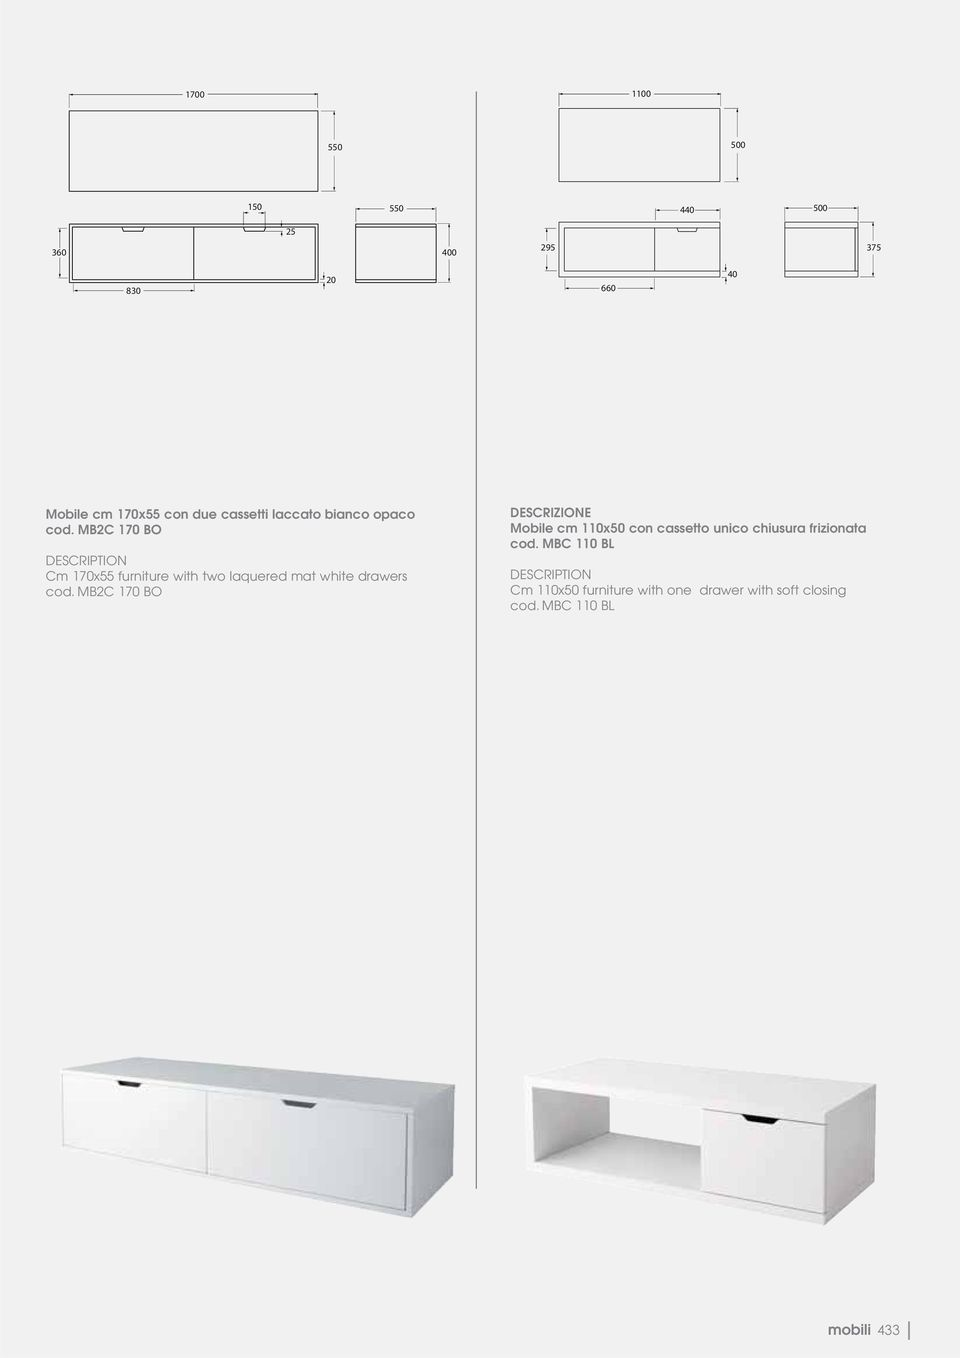 MB2C 170 BO DESCRIPTION Cm 170x55 furniture with two laquered mat white drawers cod.